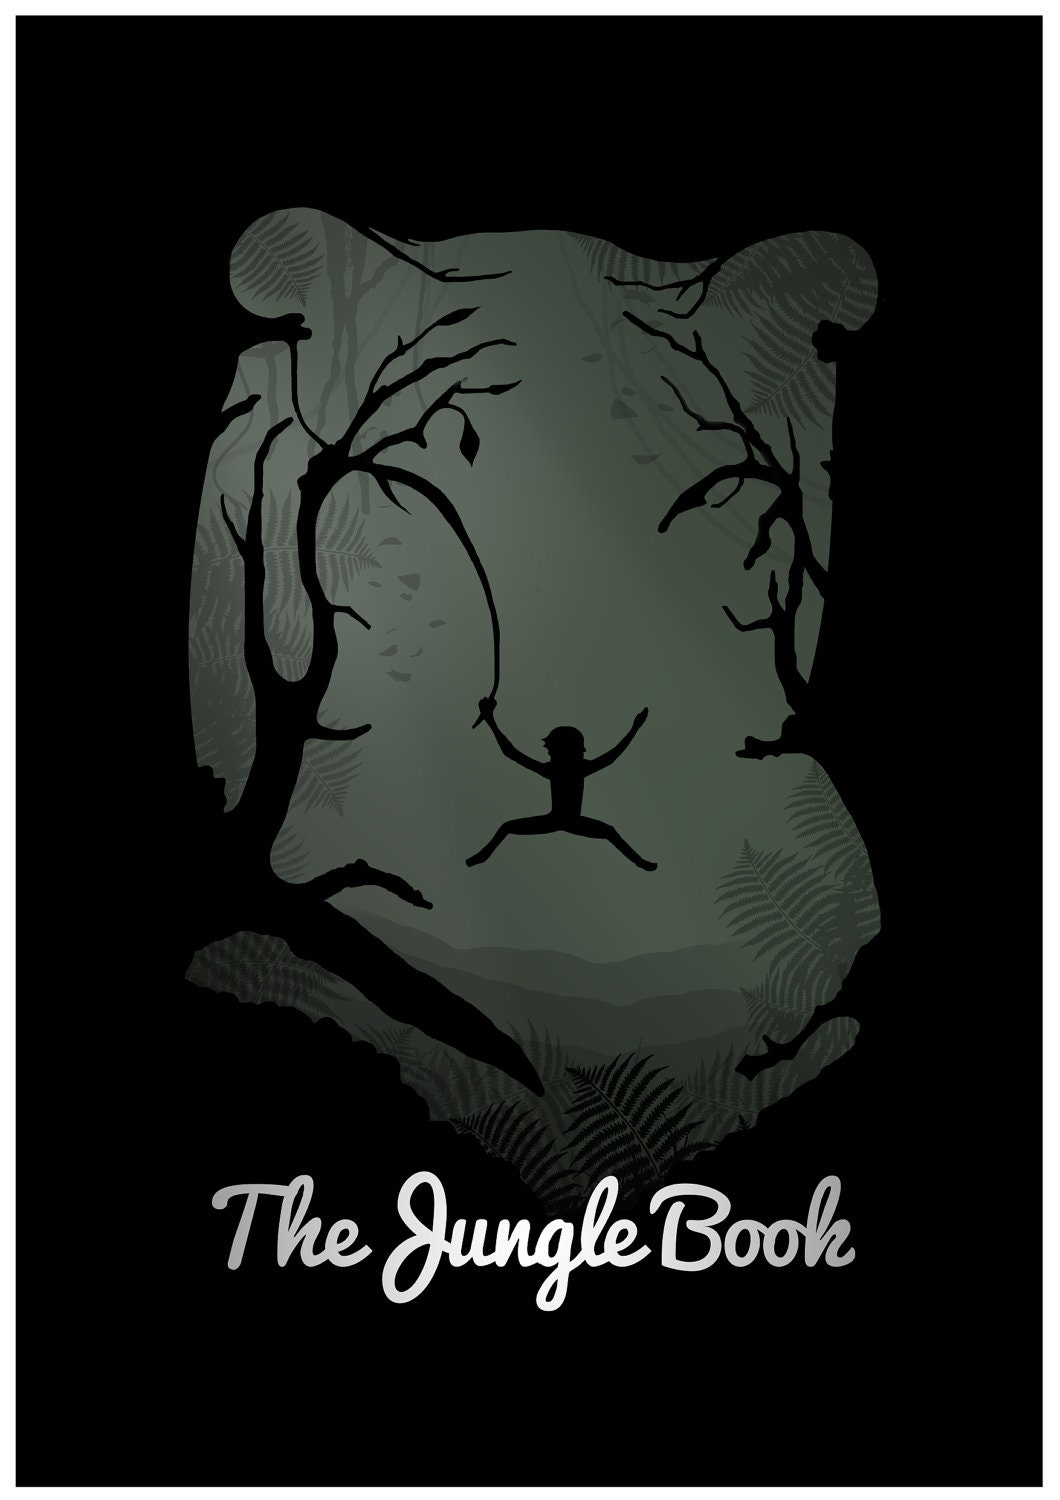 Disney S The Jungle Book Poster By Rowansm On Etsy